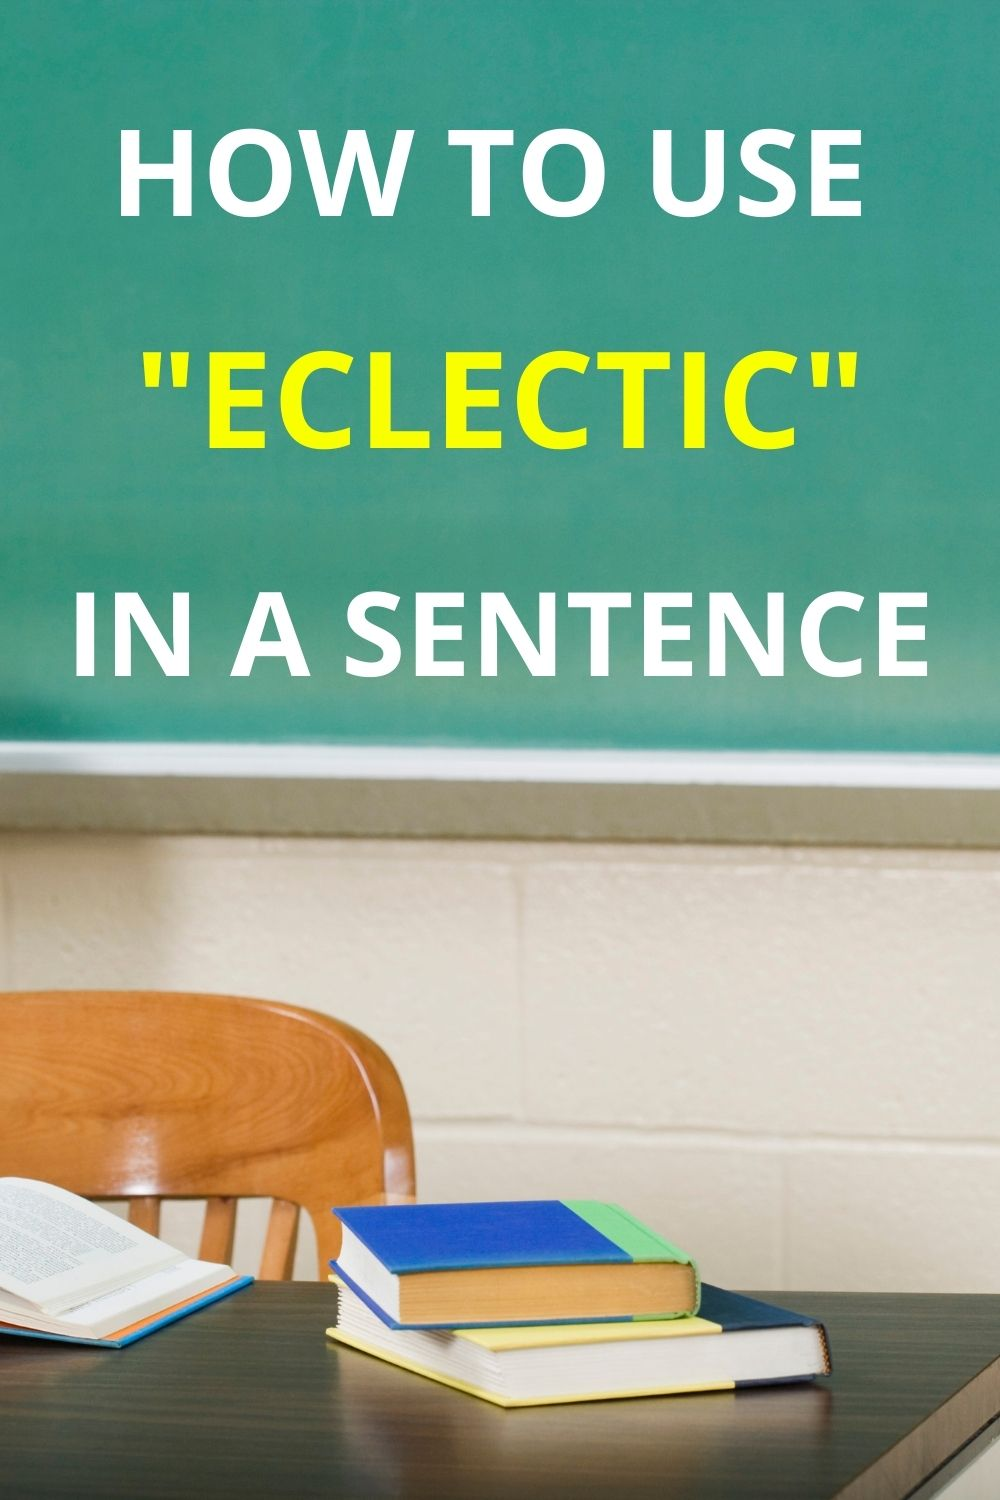 How To Use eclectic in a Sentence